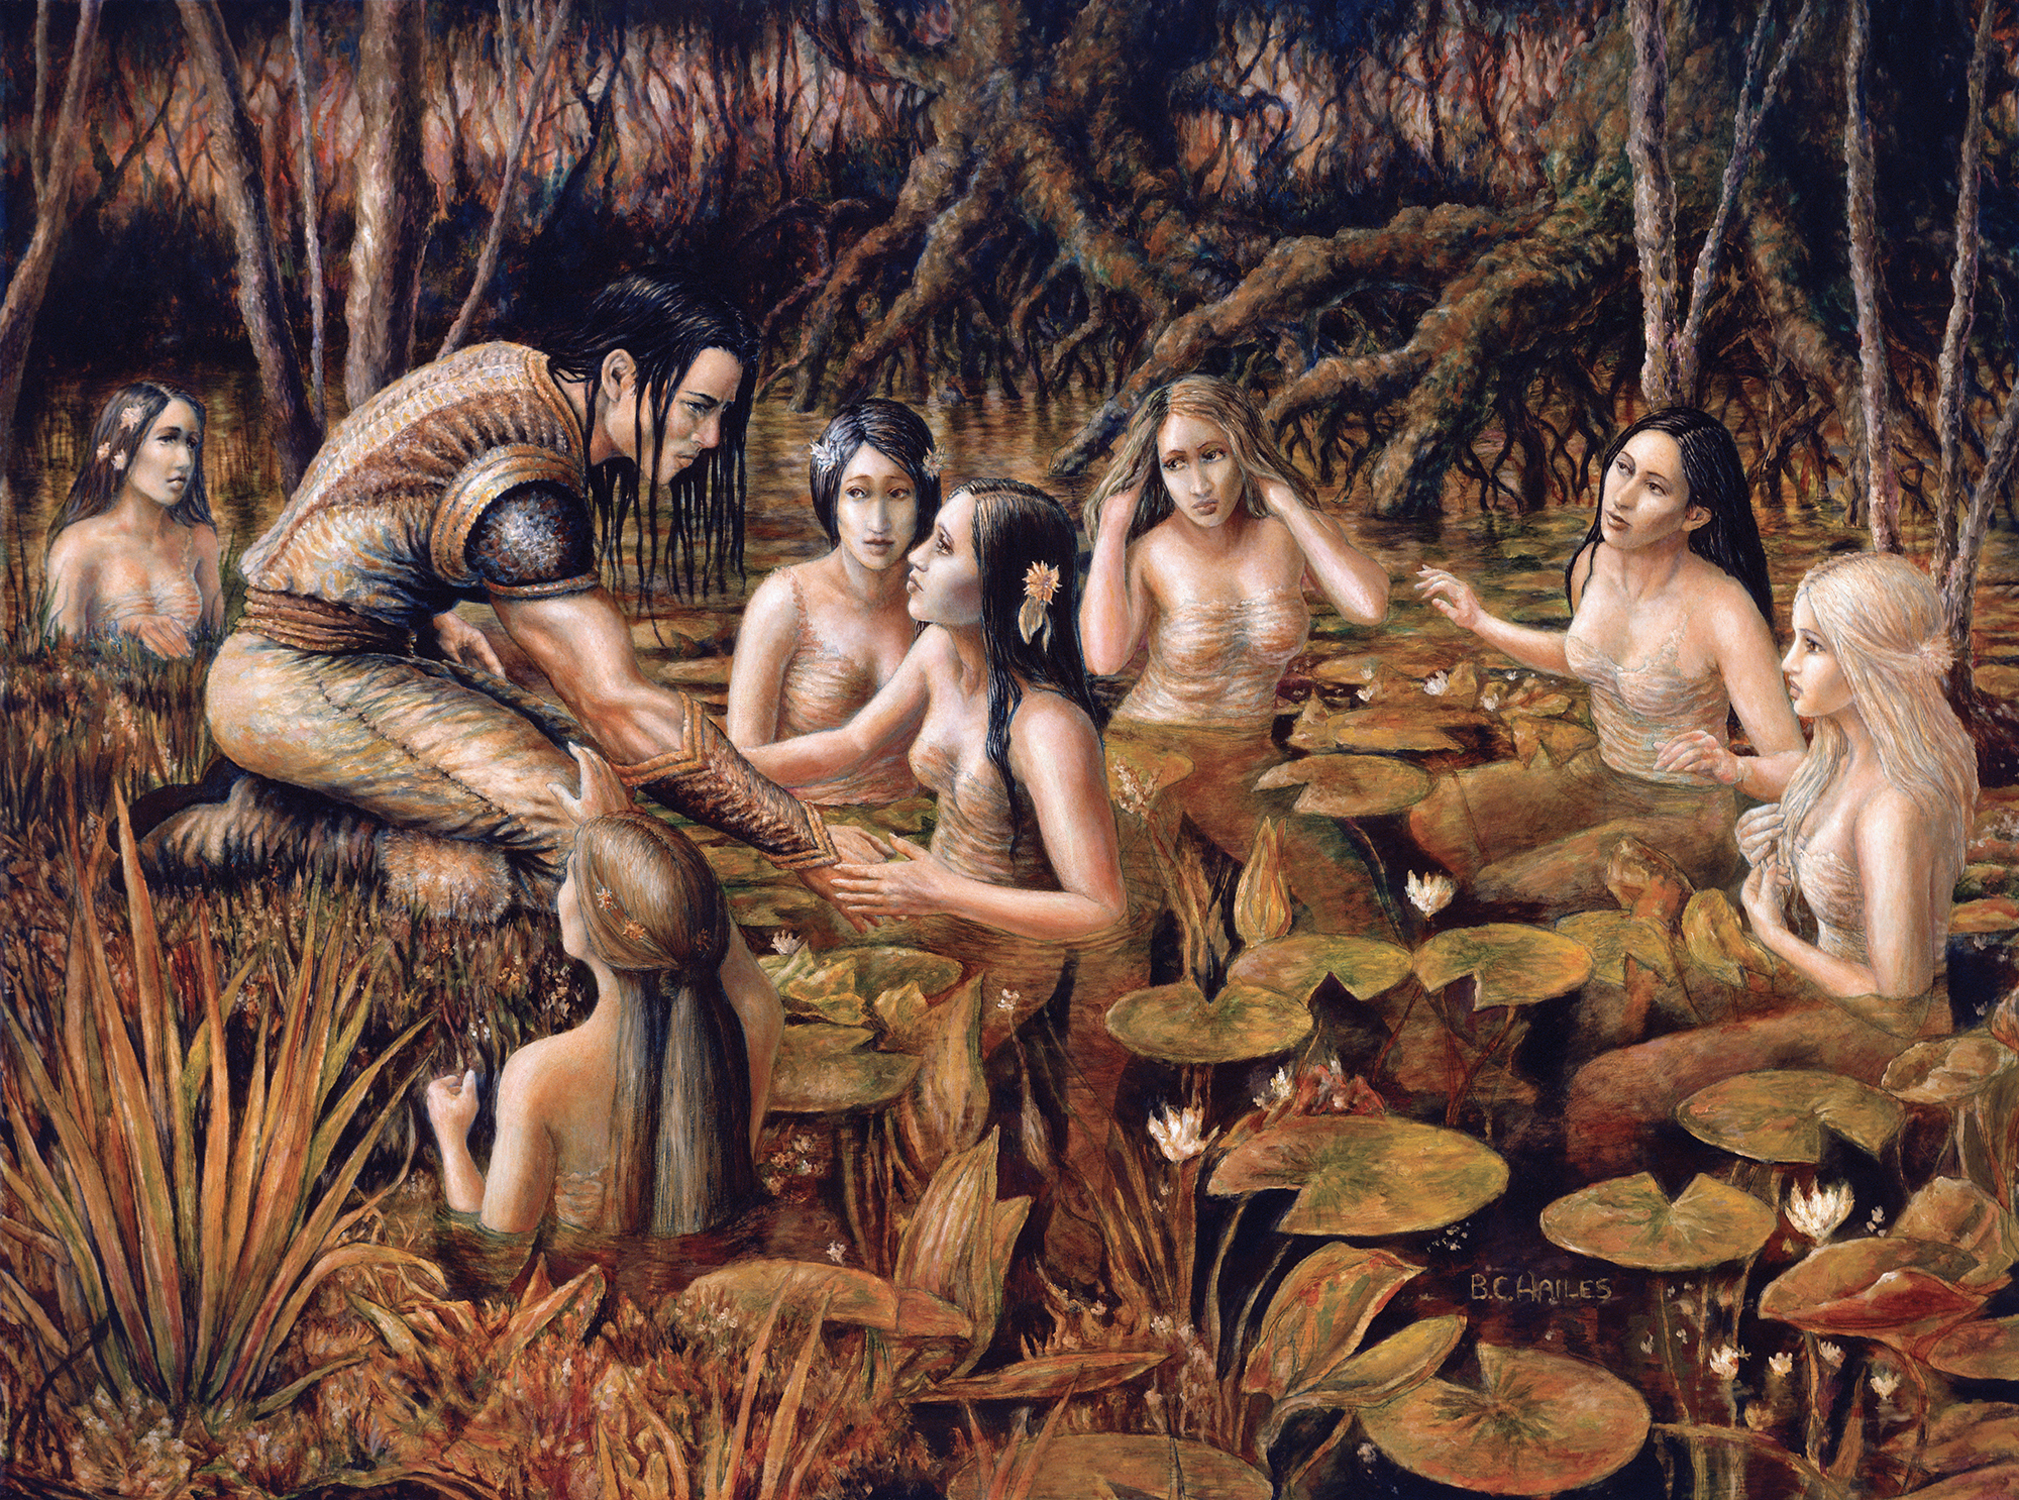 Tyris & the Water Nymphs Artwork by Brian C. Hailes